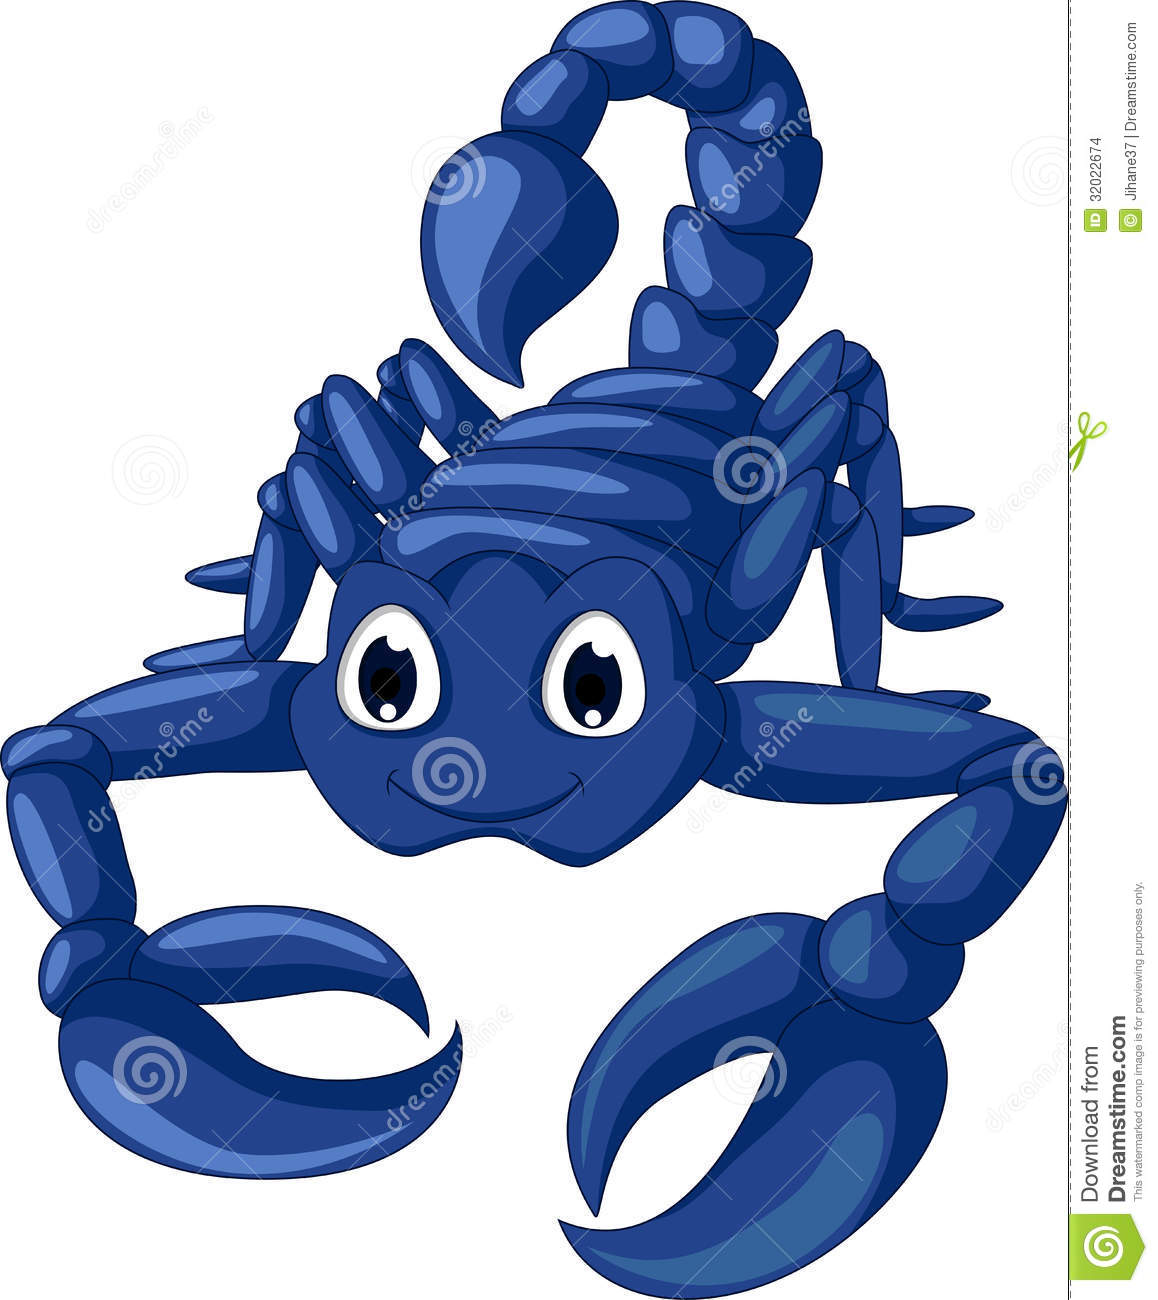 Cute blue scorpion cartoon stock illustration. Image of ...